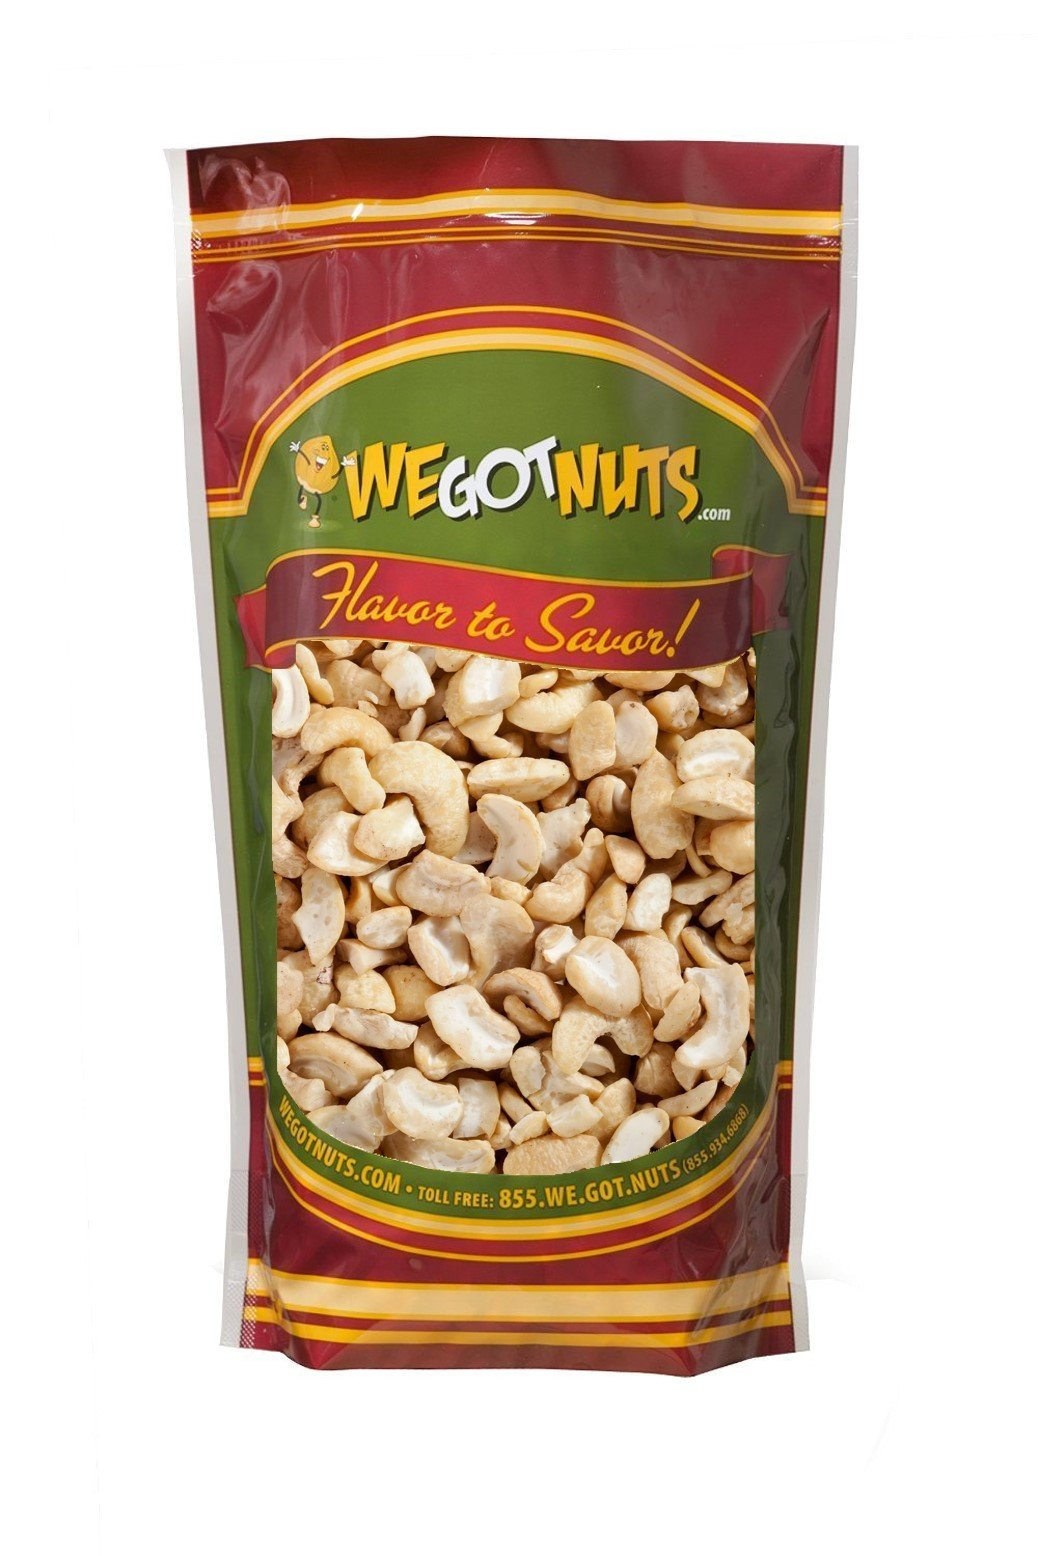 Raw Cashew Pieces By We Got Nuts: Unsalted &Unroasted Cashew Halves For Cashew Milk, Cheese &Butter -Delicious &Nutritious Snack, Packed FreshIn A Resealable Airtight Bag -3 Pounds by We Got Nuts